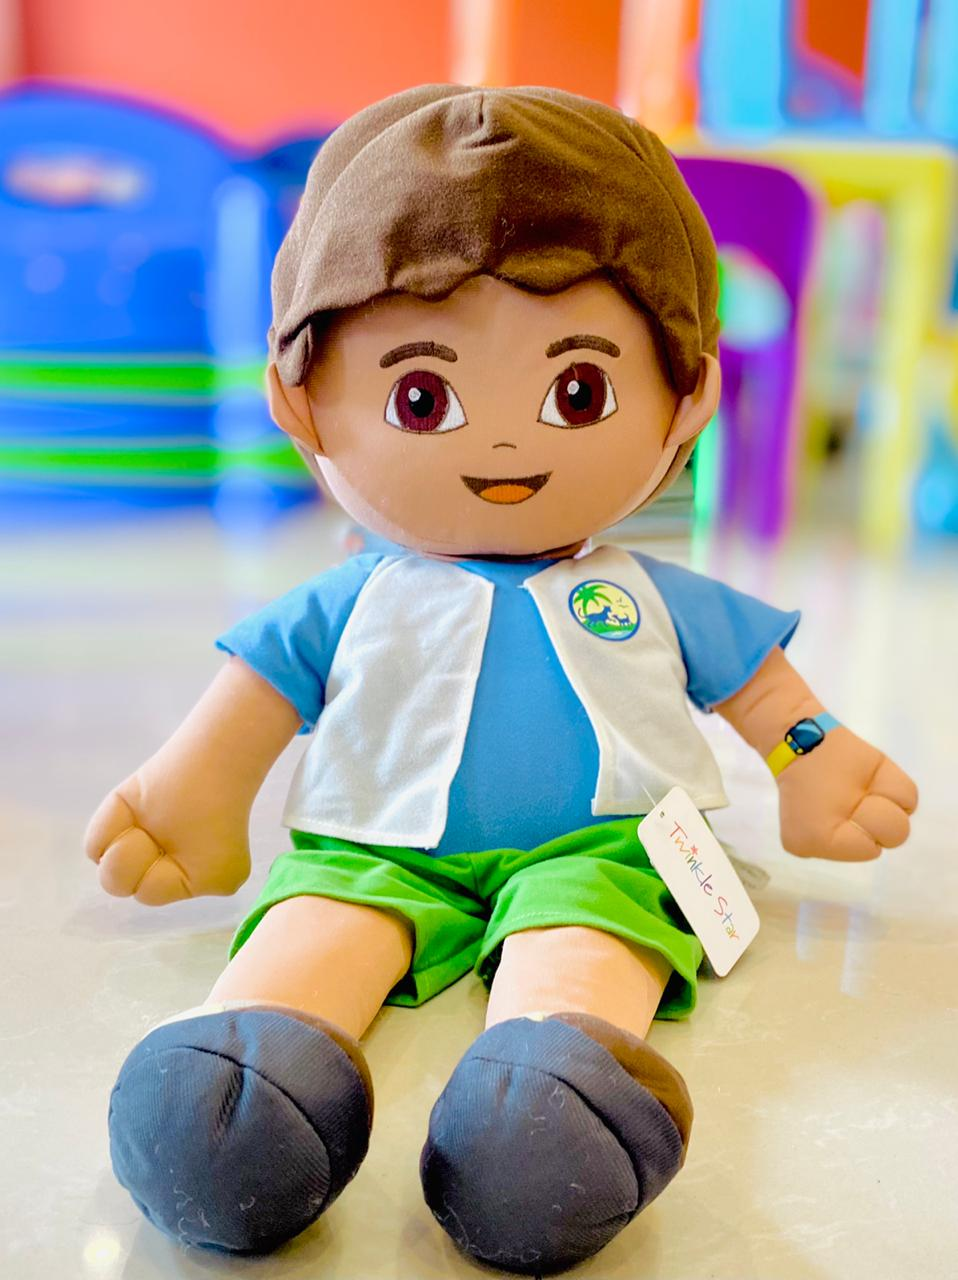 Stuff Toy Diego